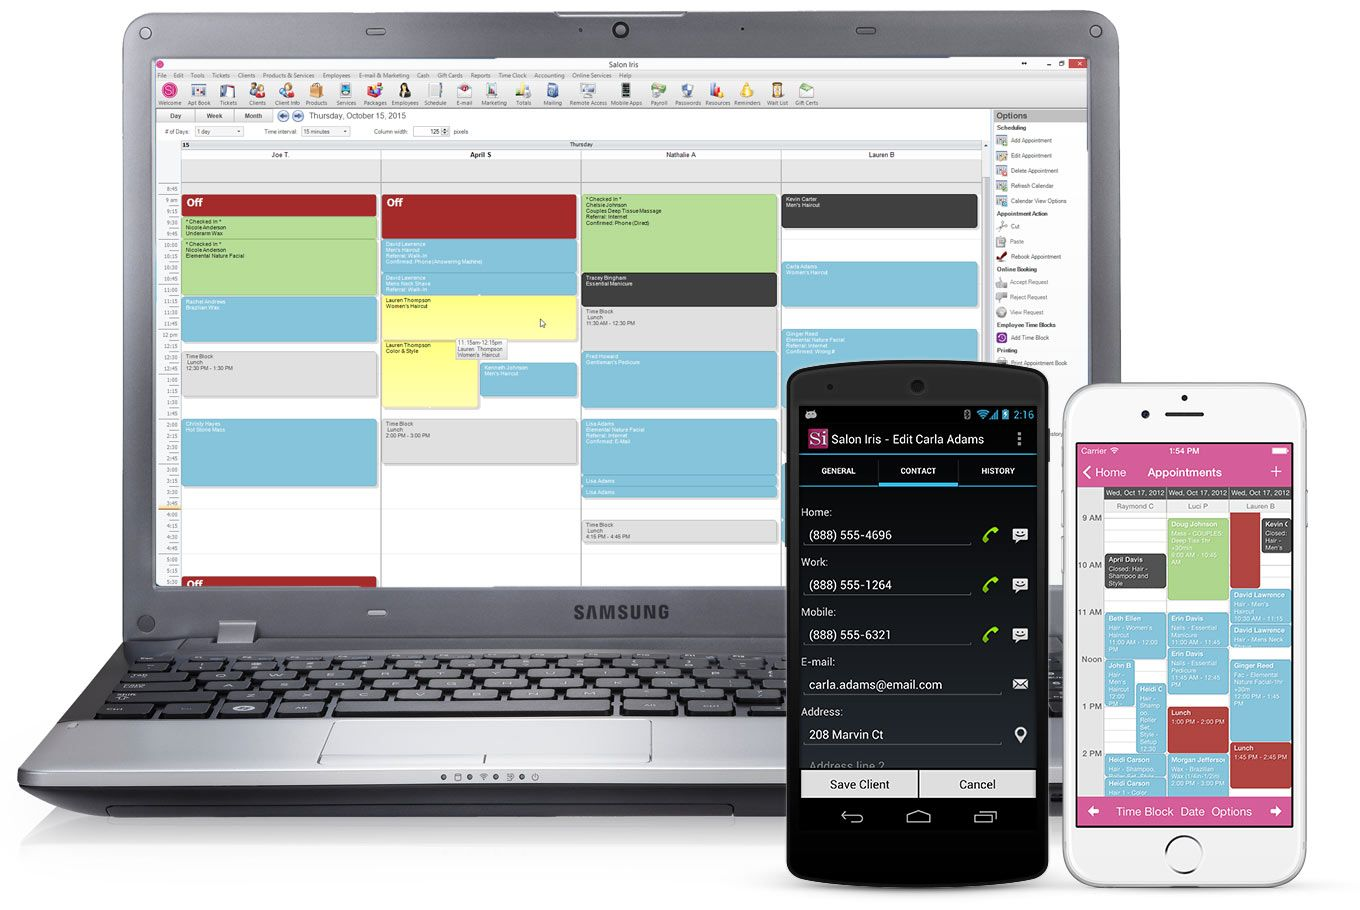 appointment scheduling software mobile apps Salon